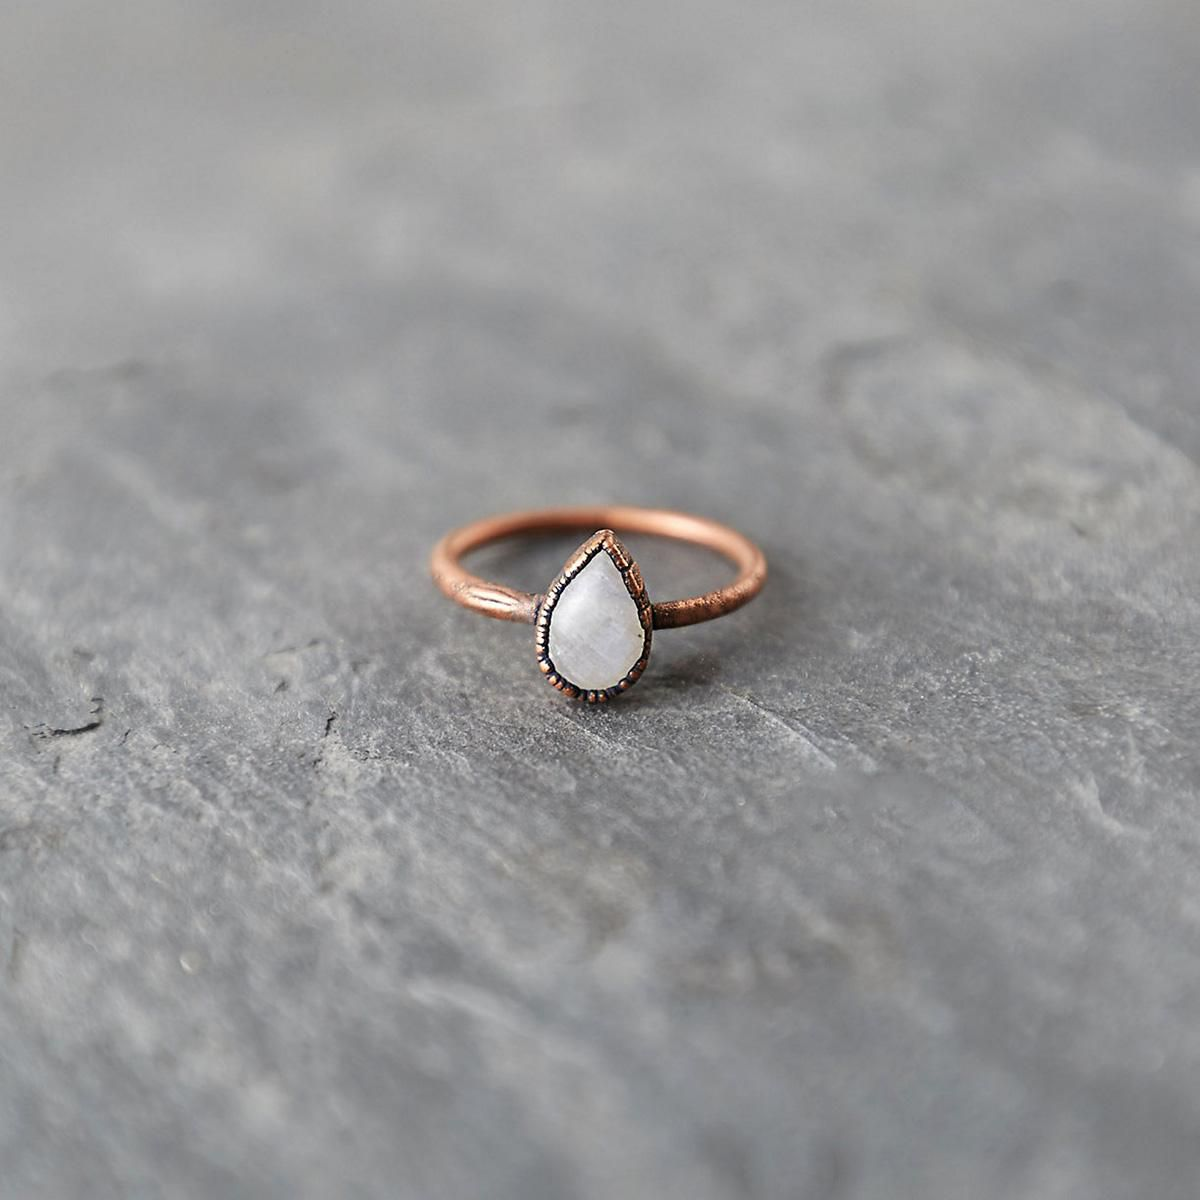 33 Moonstone Engagement Rings You're Going to Want Right Now